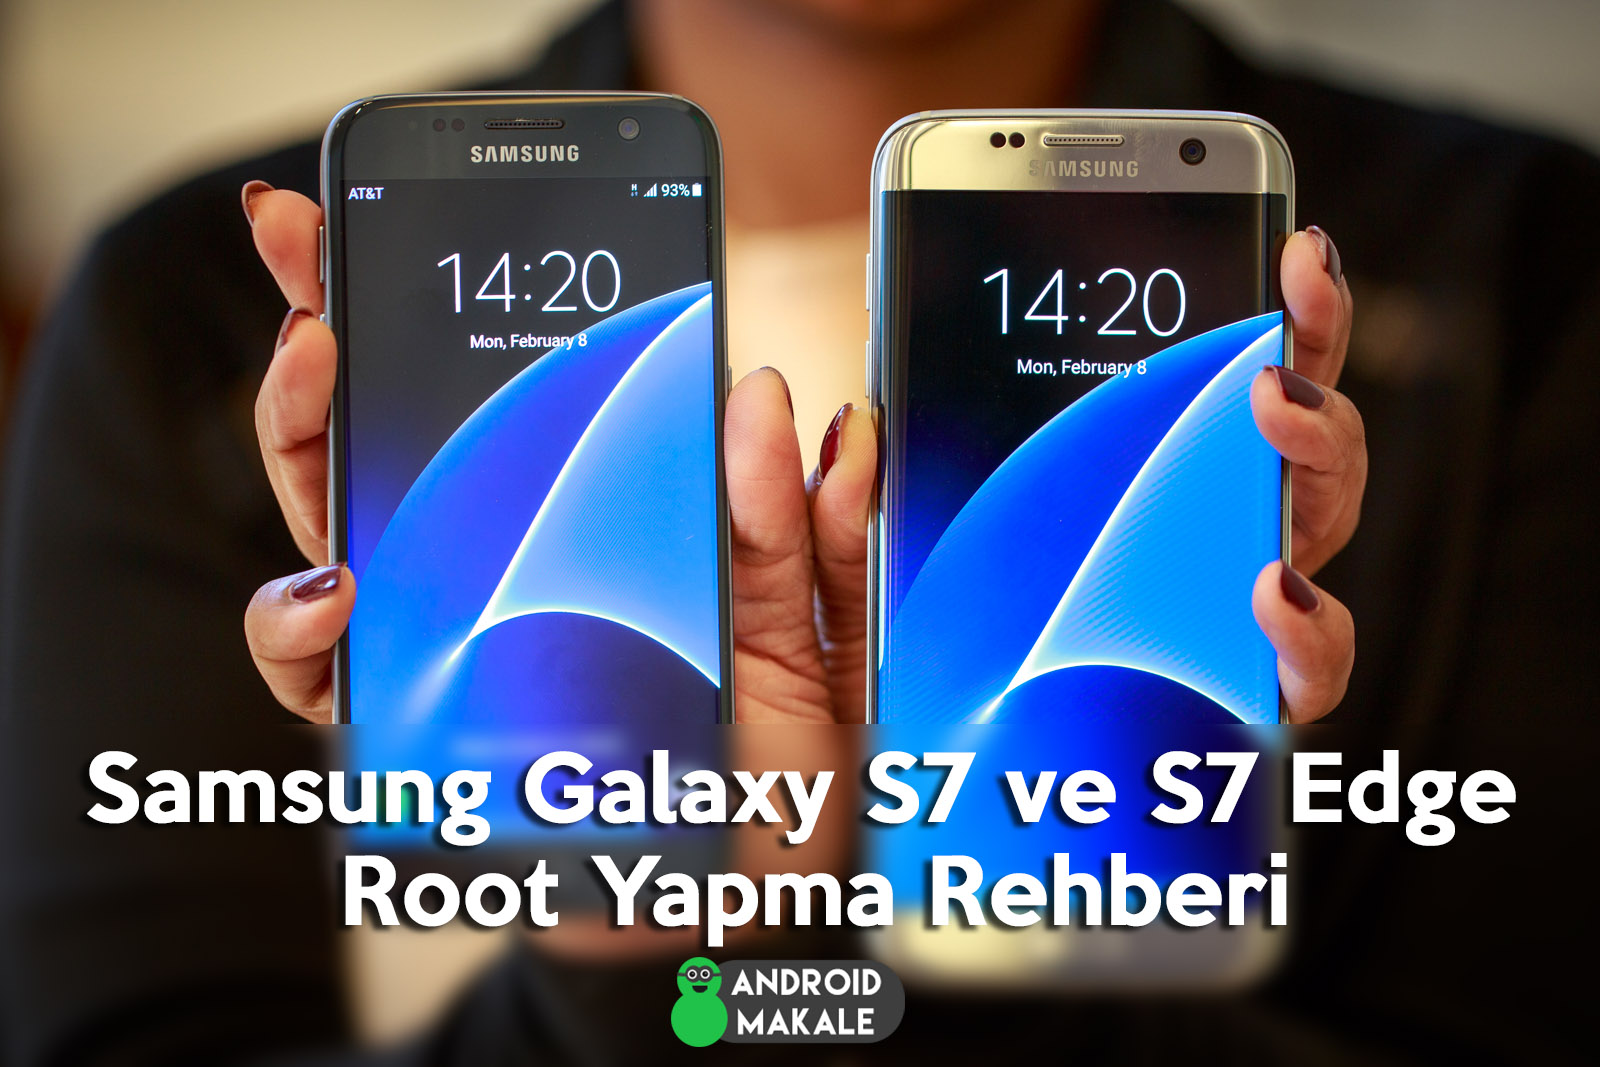 Samsung Galaxy S7 ve S7 Edge Root Yapma Rehberi samsung galaxy s7 edge samsung galaxy s7 root yapma root files root dosyası how to root